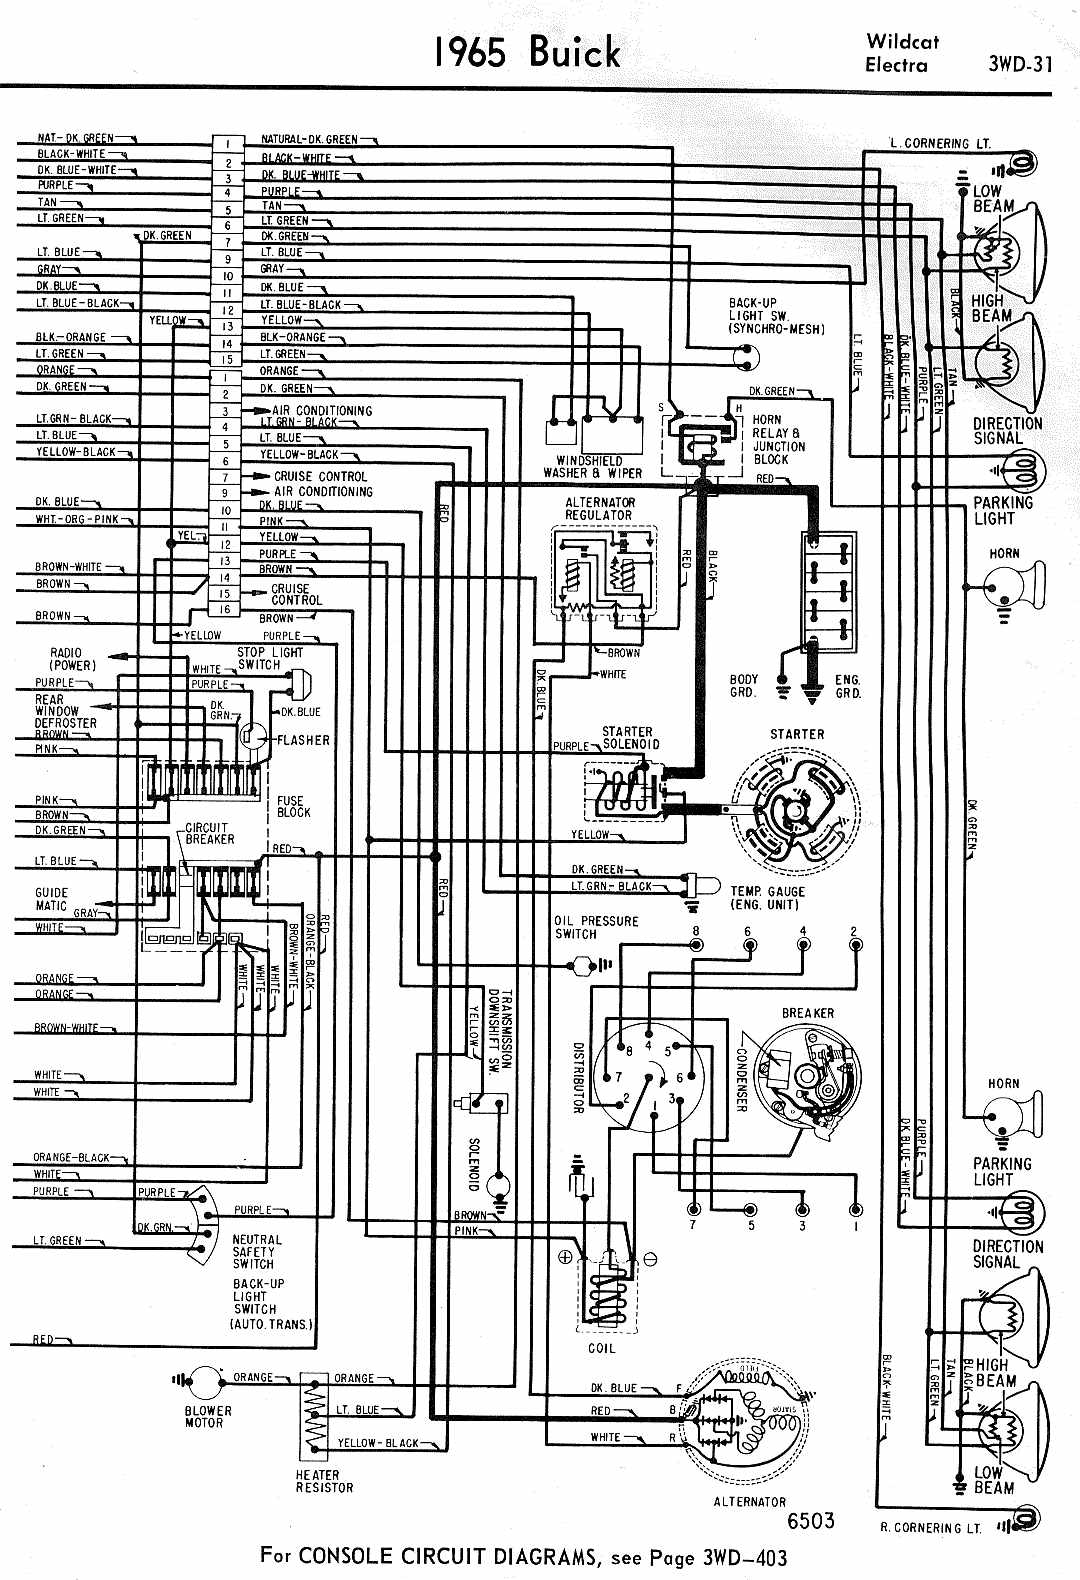 wiring diagram 1972 buick skylark all wiring diagram 1972 skylark wiring diagram wiring diagrams best 1972 buick skylark body parts 1988 buick skylark transmission